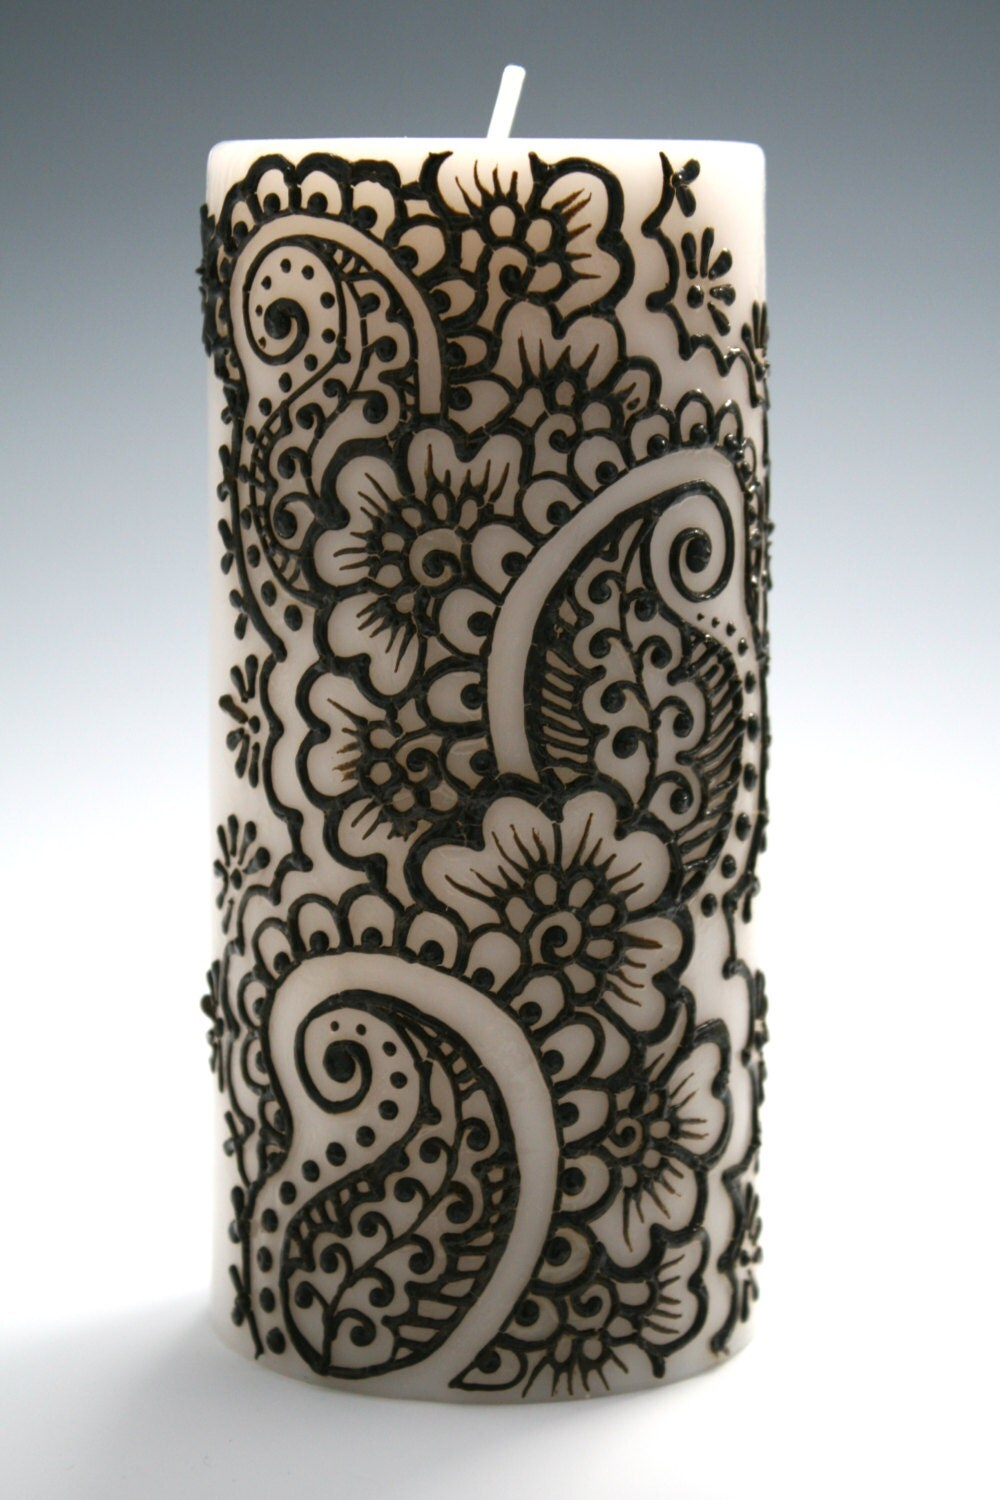 Henna Candle with Intricate Indian Style Design by RedwoodHenna